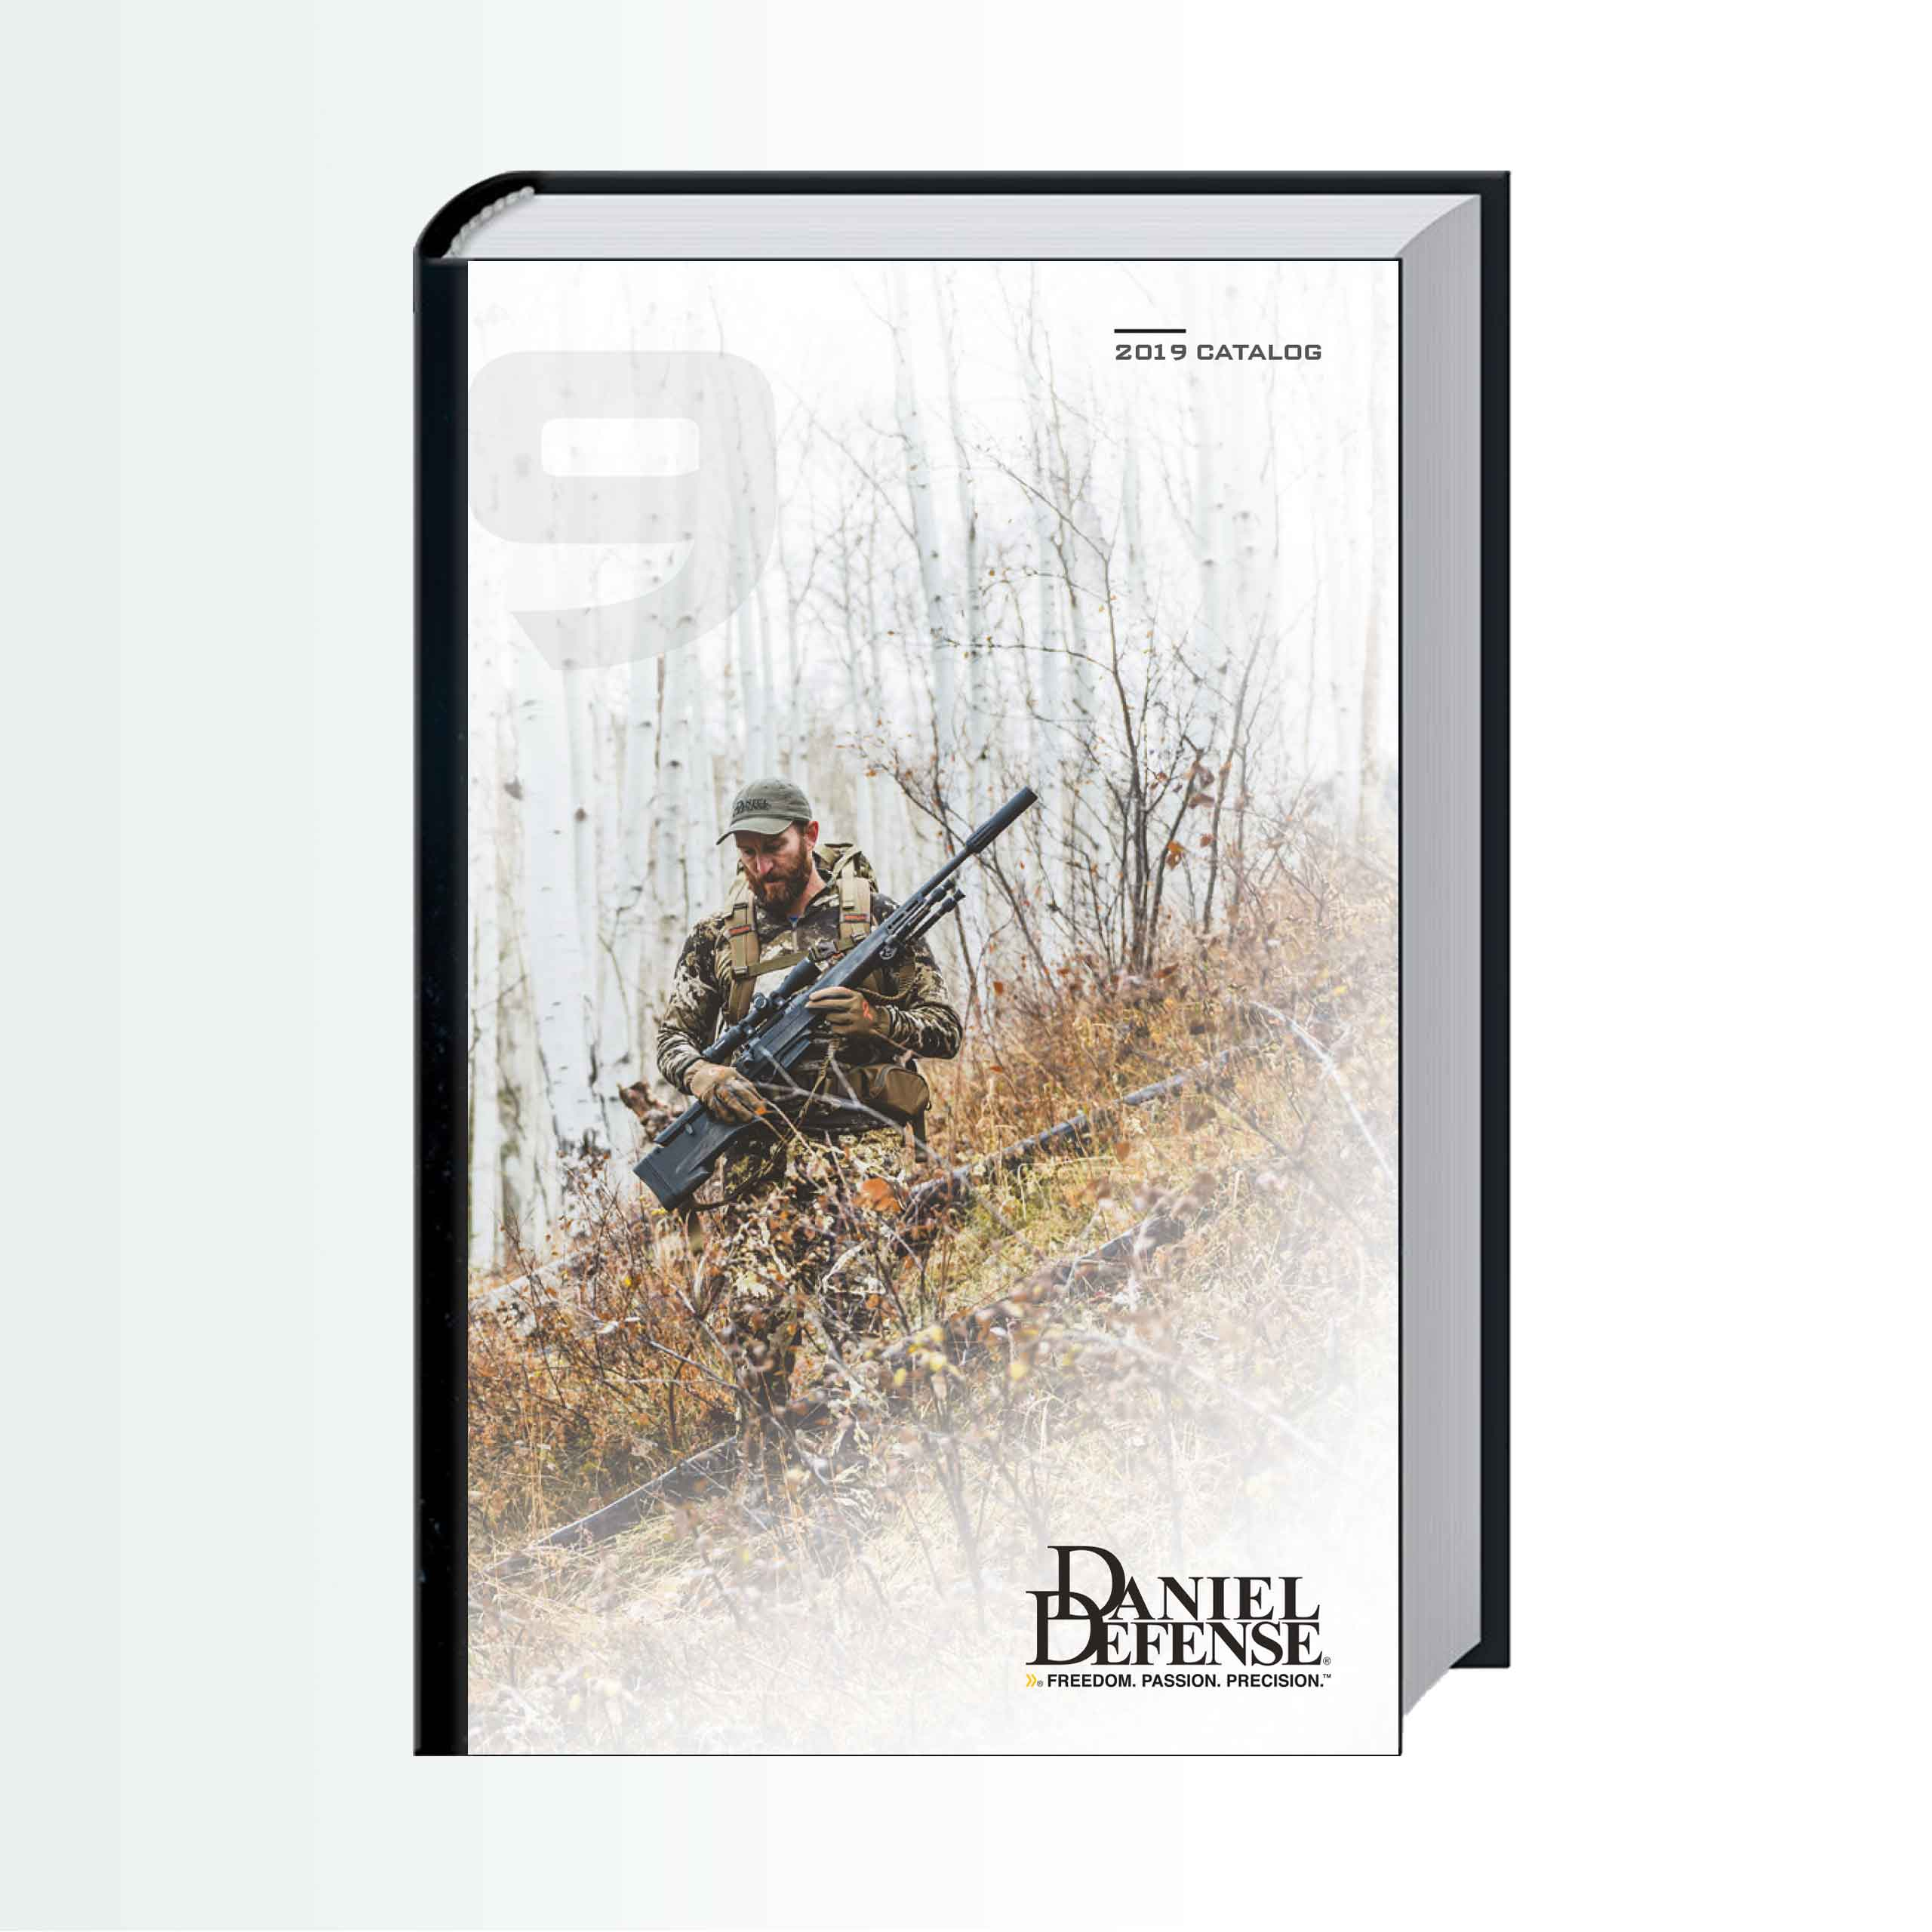 Product Catalog of the 2019th Daniel Defense Company - Buy military